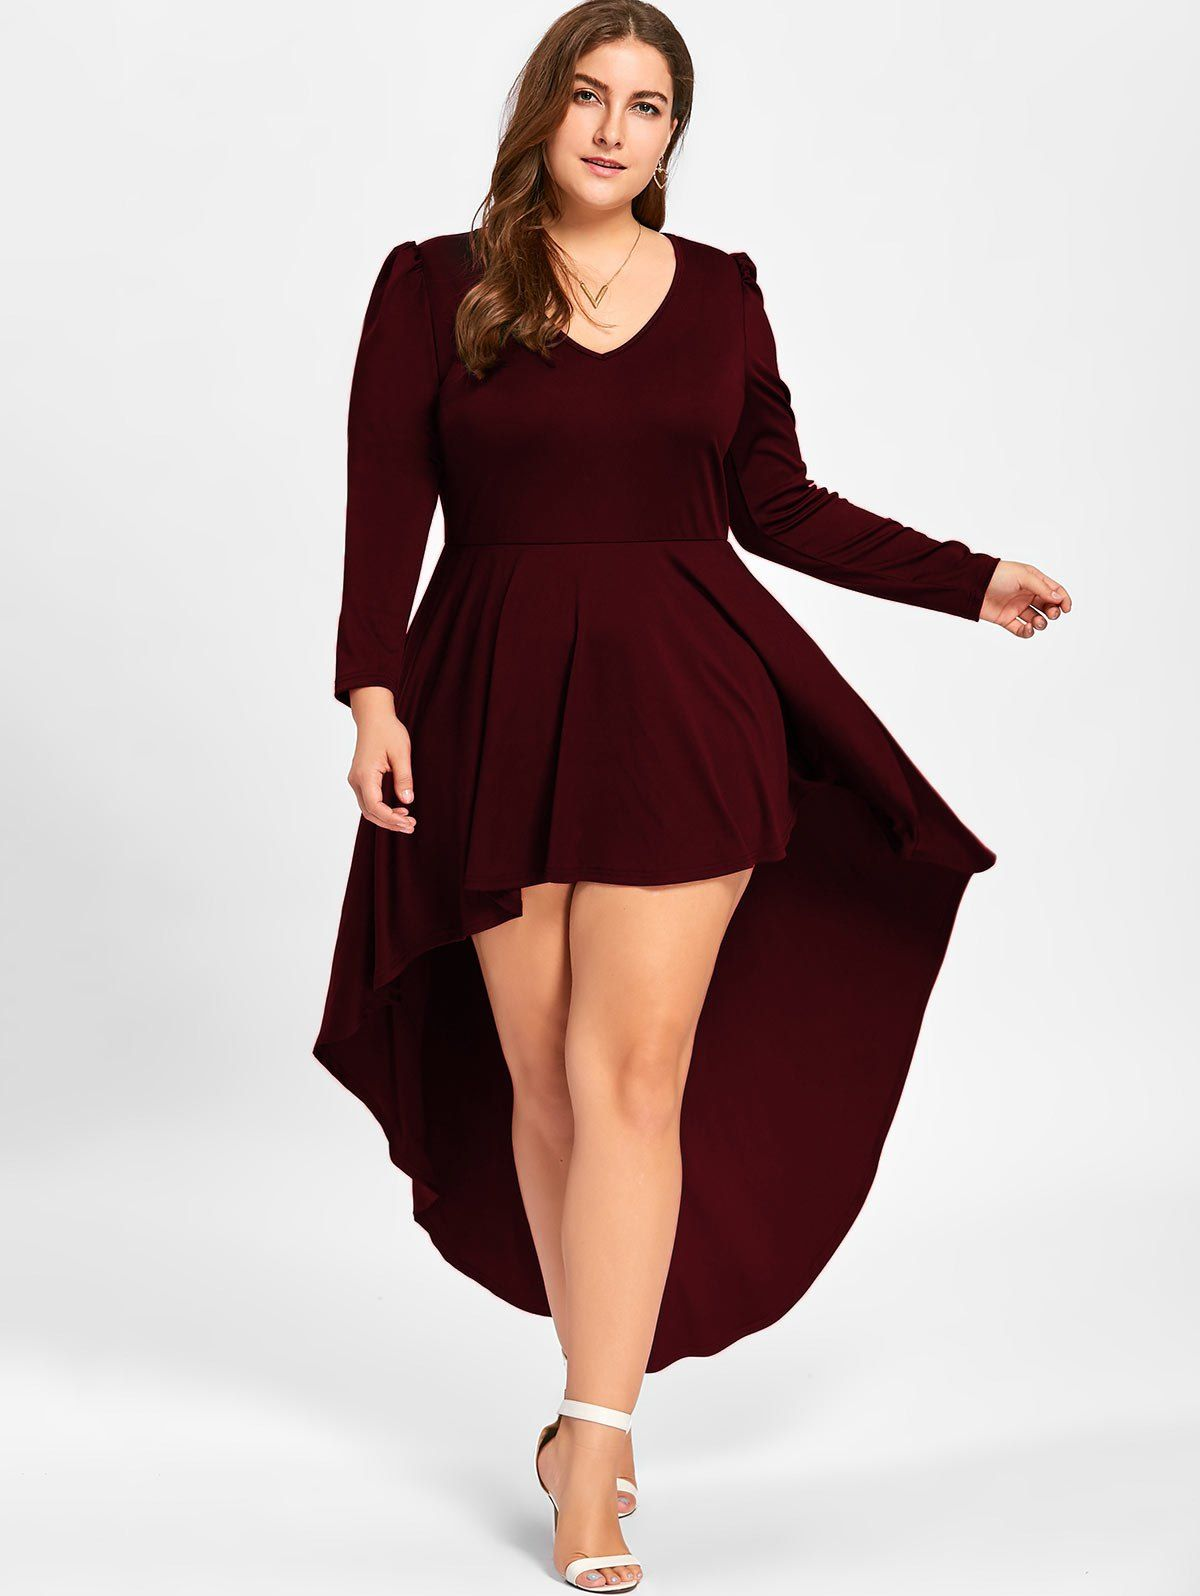 Plus Size V Neck Cocktail Dress In Wine Red 2xl Twinkledeals Com Fall Dresses To We Long Sleeve Cocktail Dress V Neck Cocktail Dress Plus Size Party Dresses [ 1596 x 1200 Pixel ]